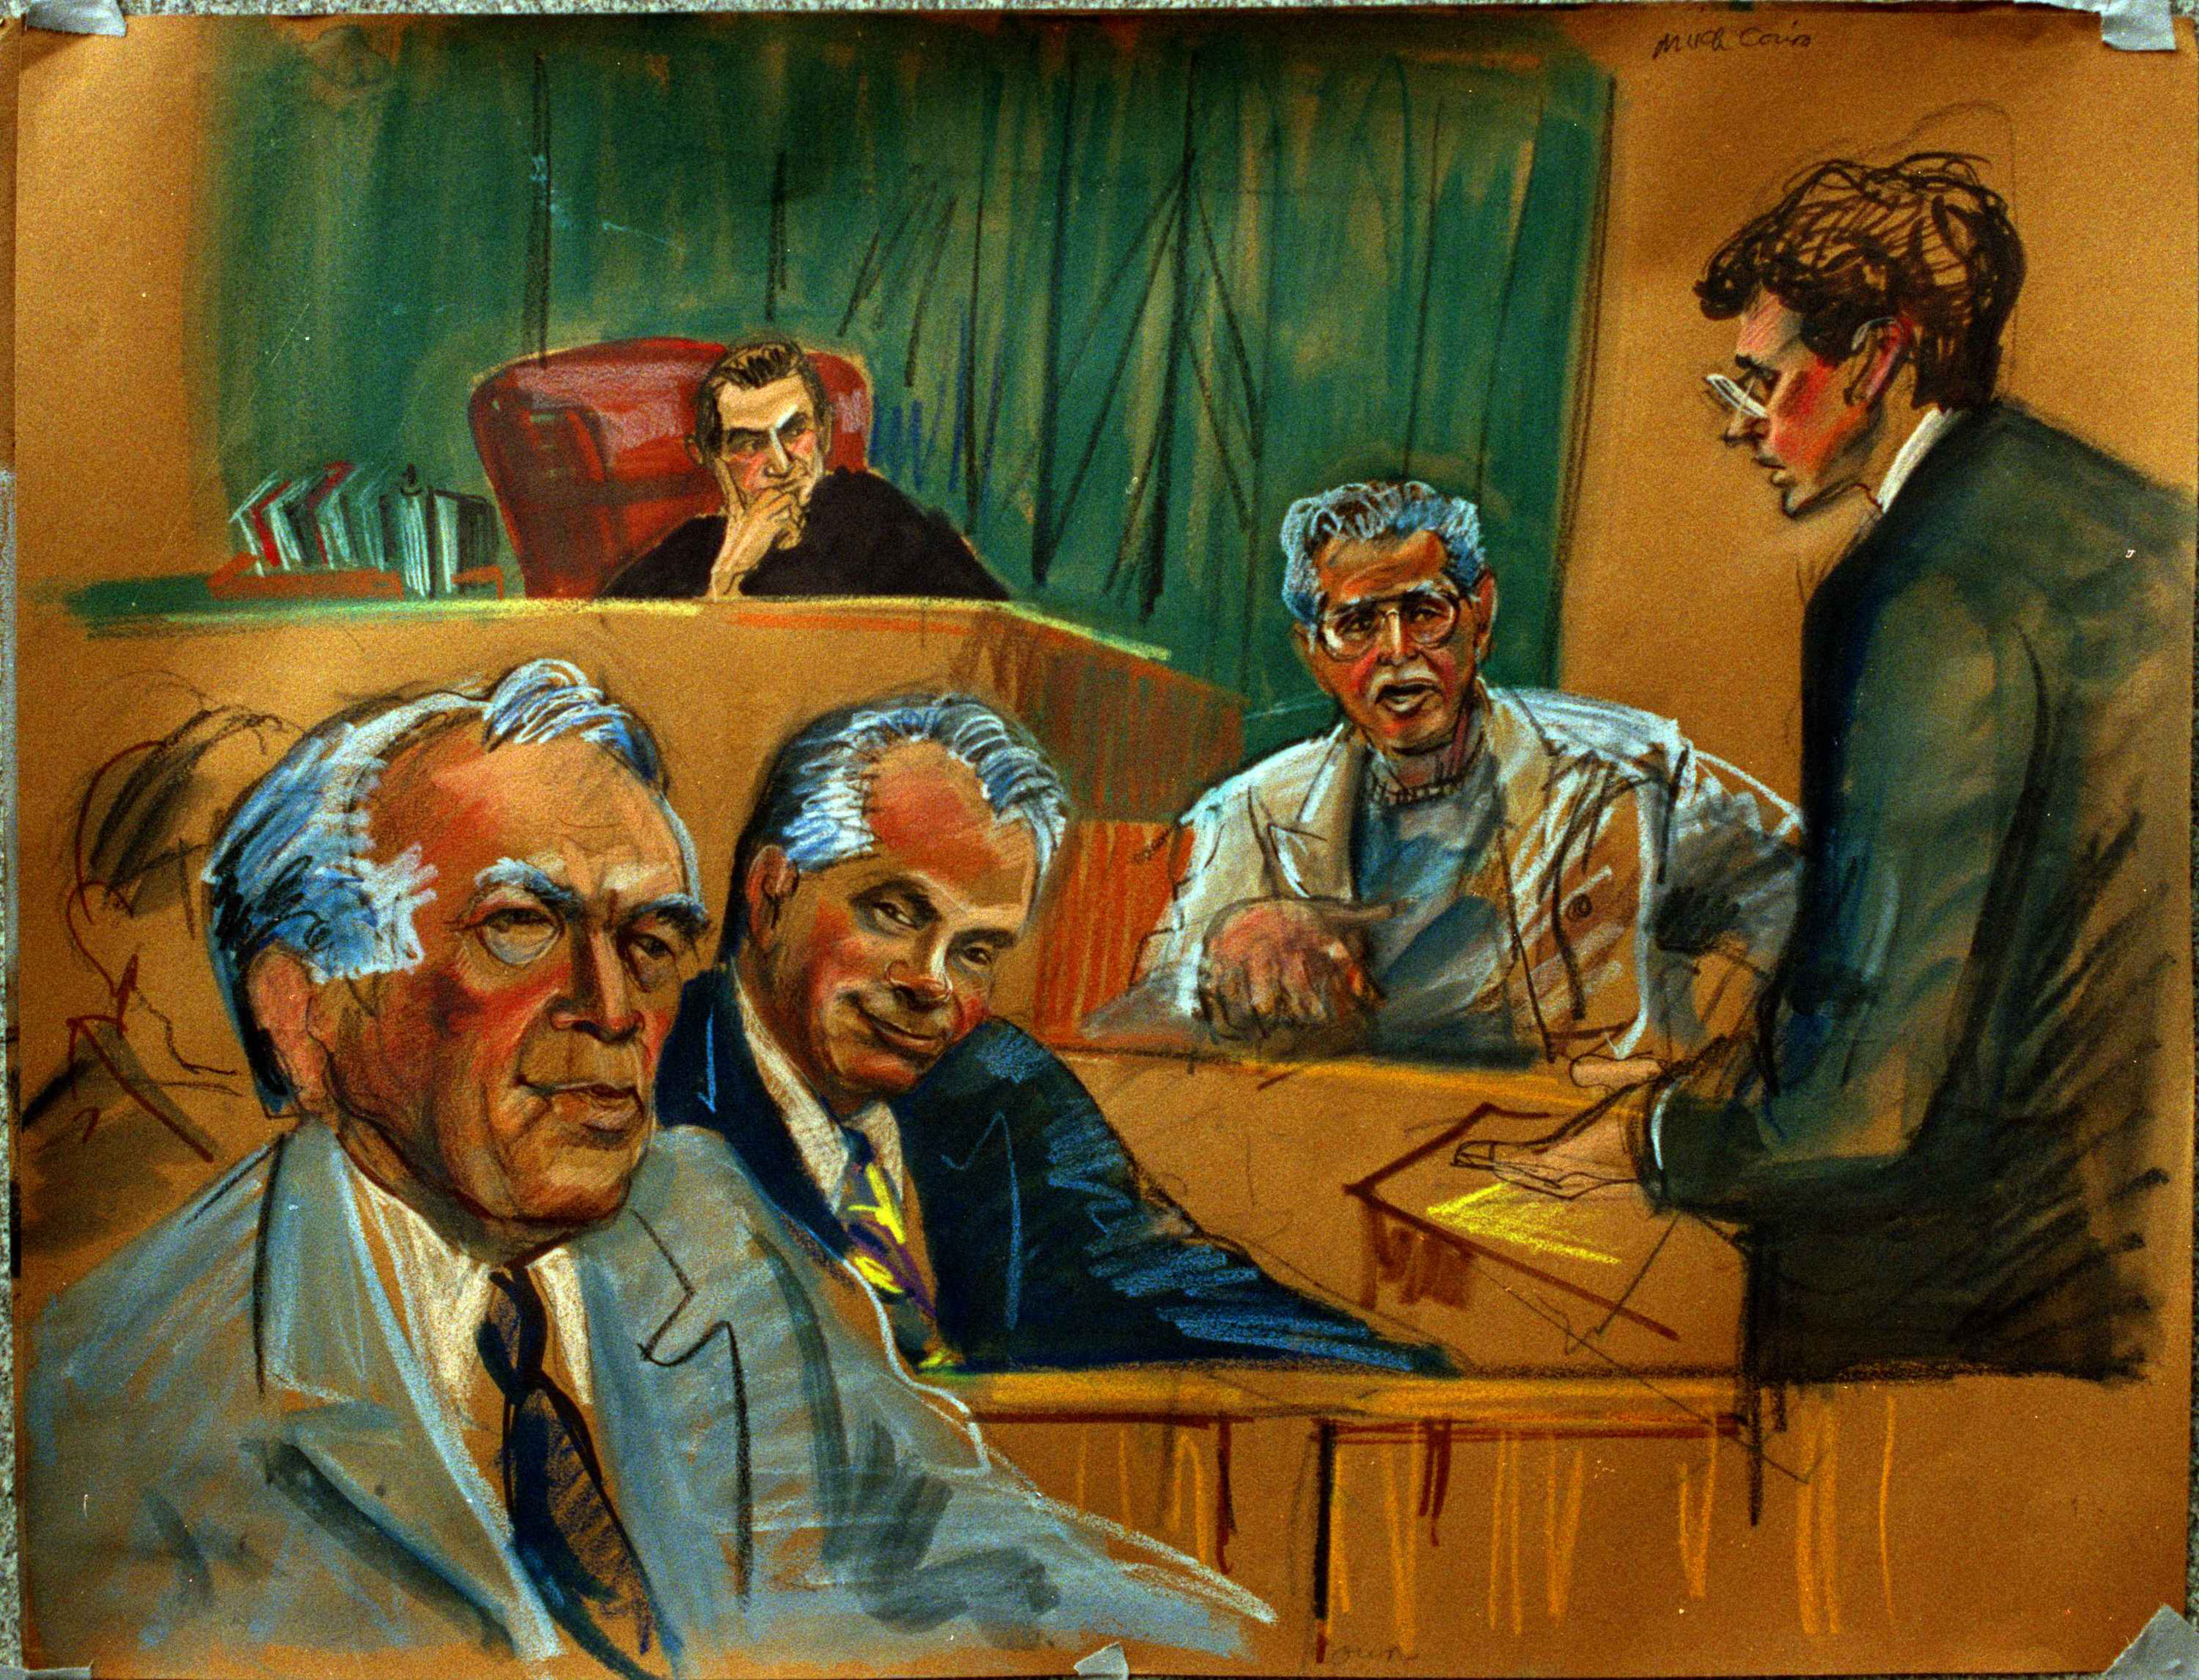 From left: Anthony Quinn, John Gotti, U.S. District Judge I. Leo Glasser; witness Anthony Gurino and assistant U.S. attorney John Gleeson on March 21, 1992. The judge threatened to send Gotti to a court house hold after he was caught making mocking gestures at a prosecuting attorney. Gotti was sentenced to life in prison without parole.